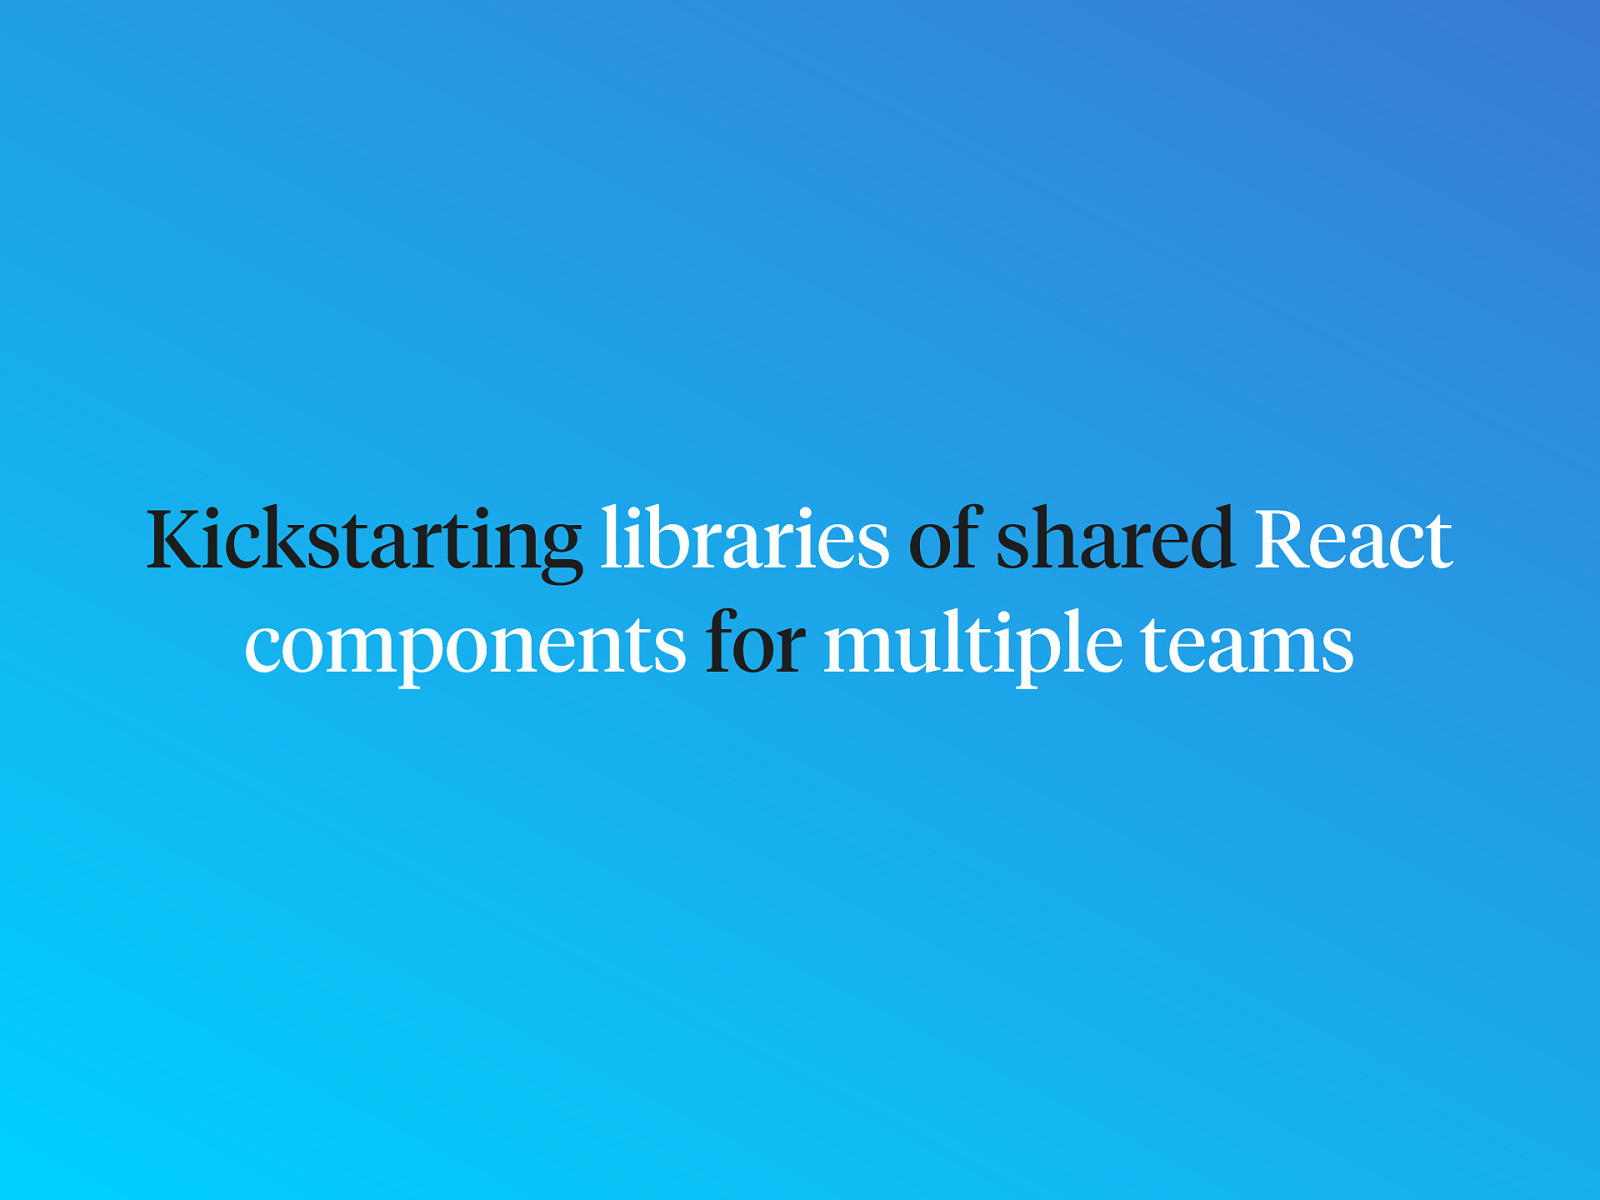 Kickstarting libraries of shared React components for multiple teams